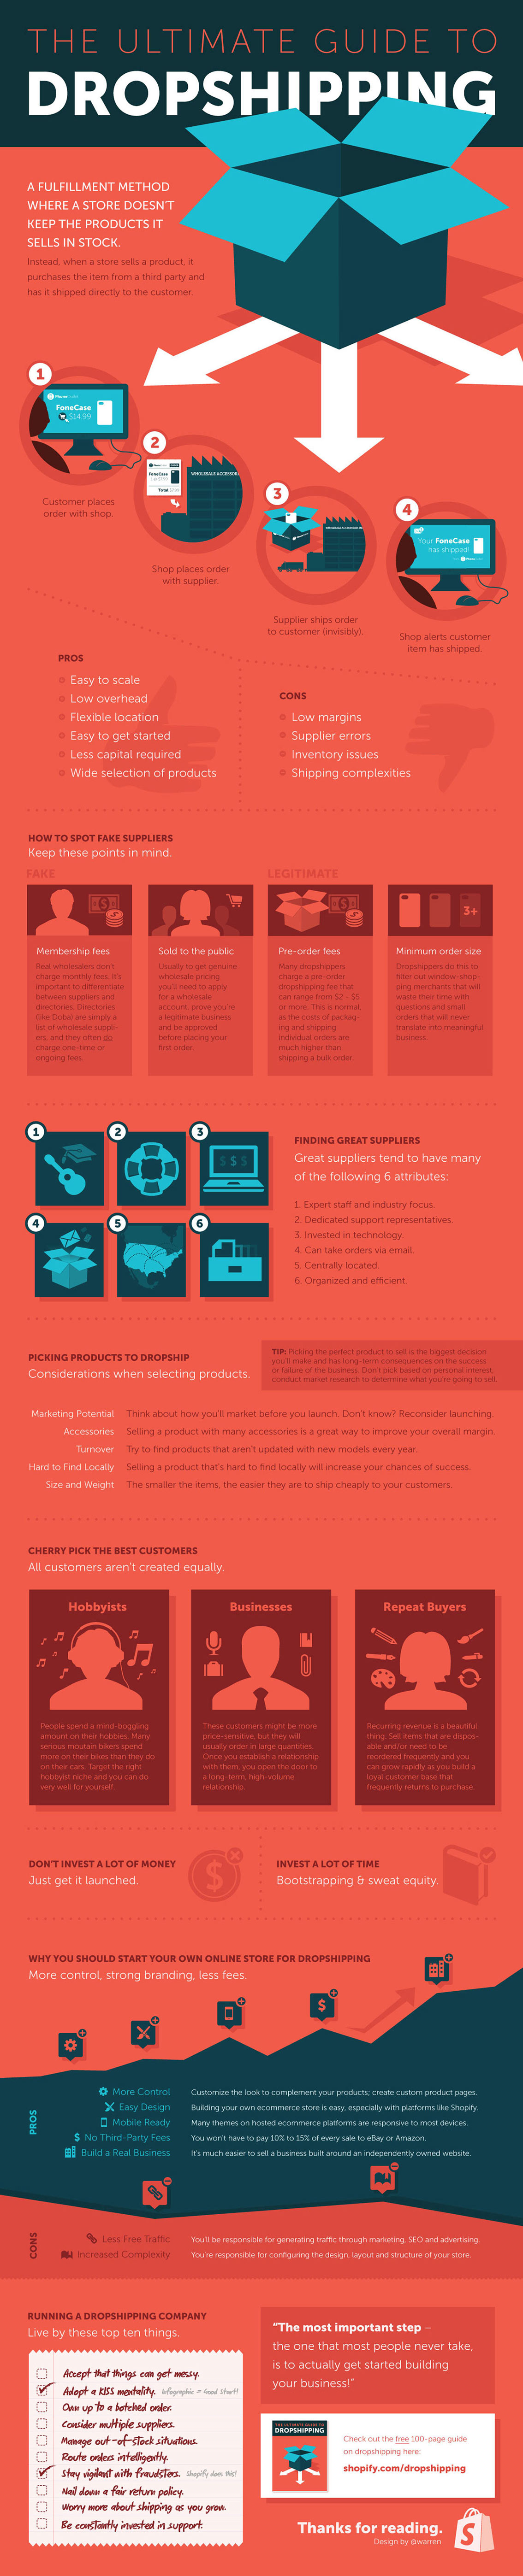 How to Make Money on Dropshipping Products - eCommerce Infographic